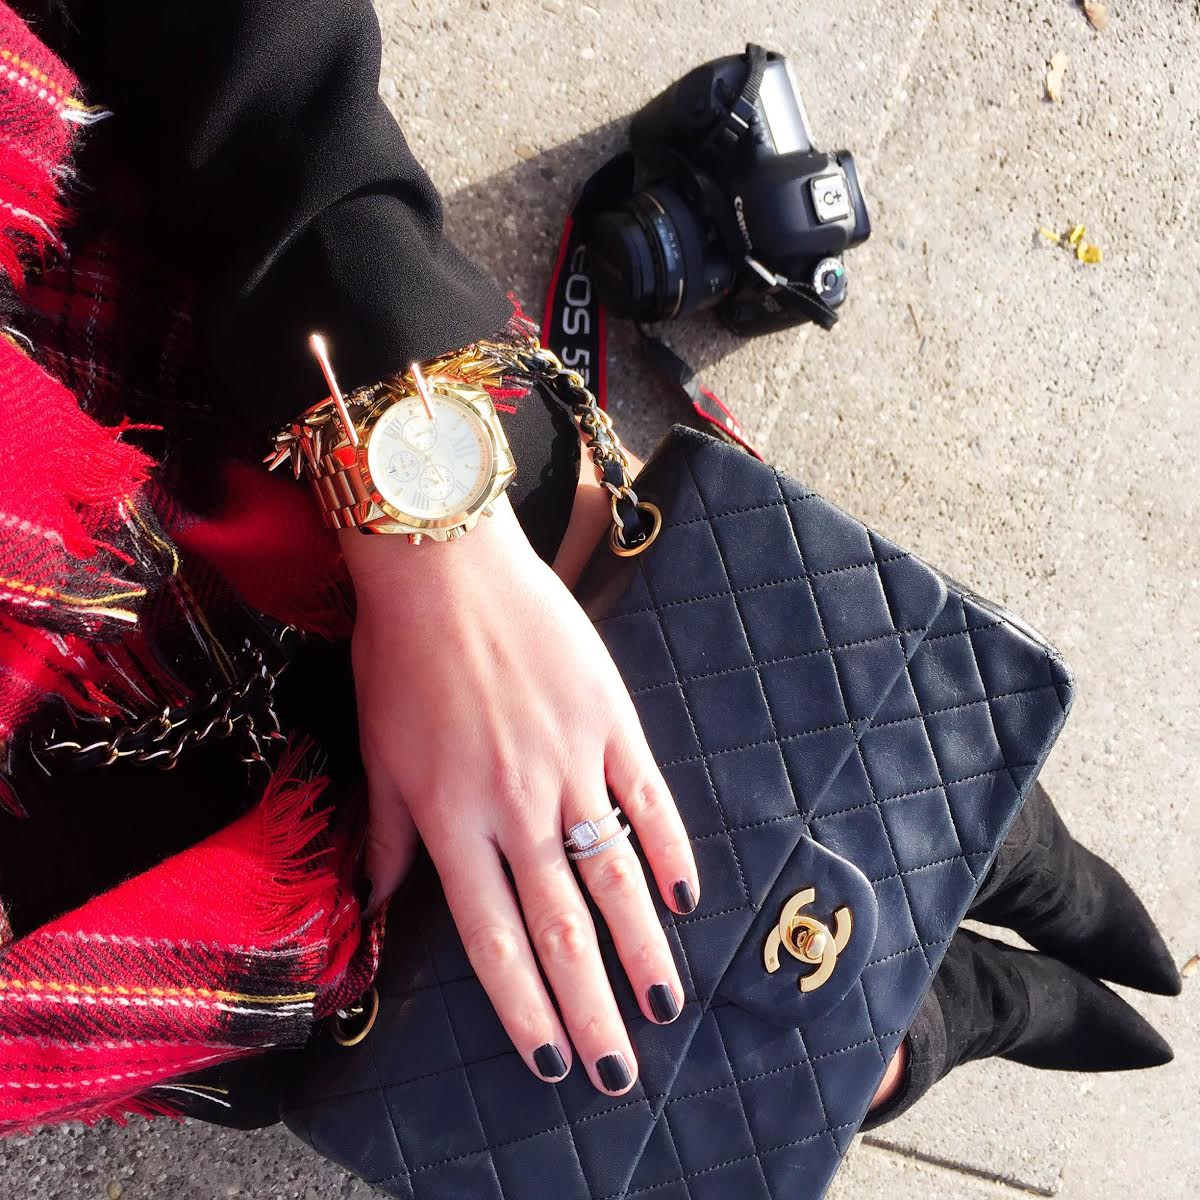 outfit-details-chanel-bag-michaelkors-watch